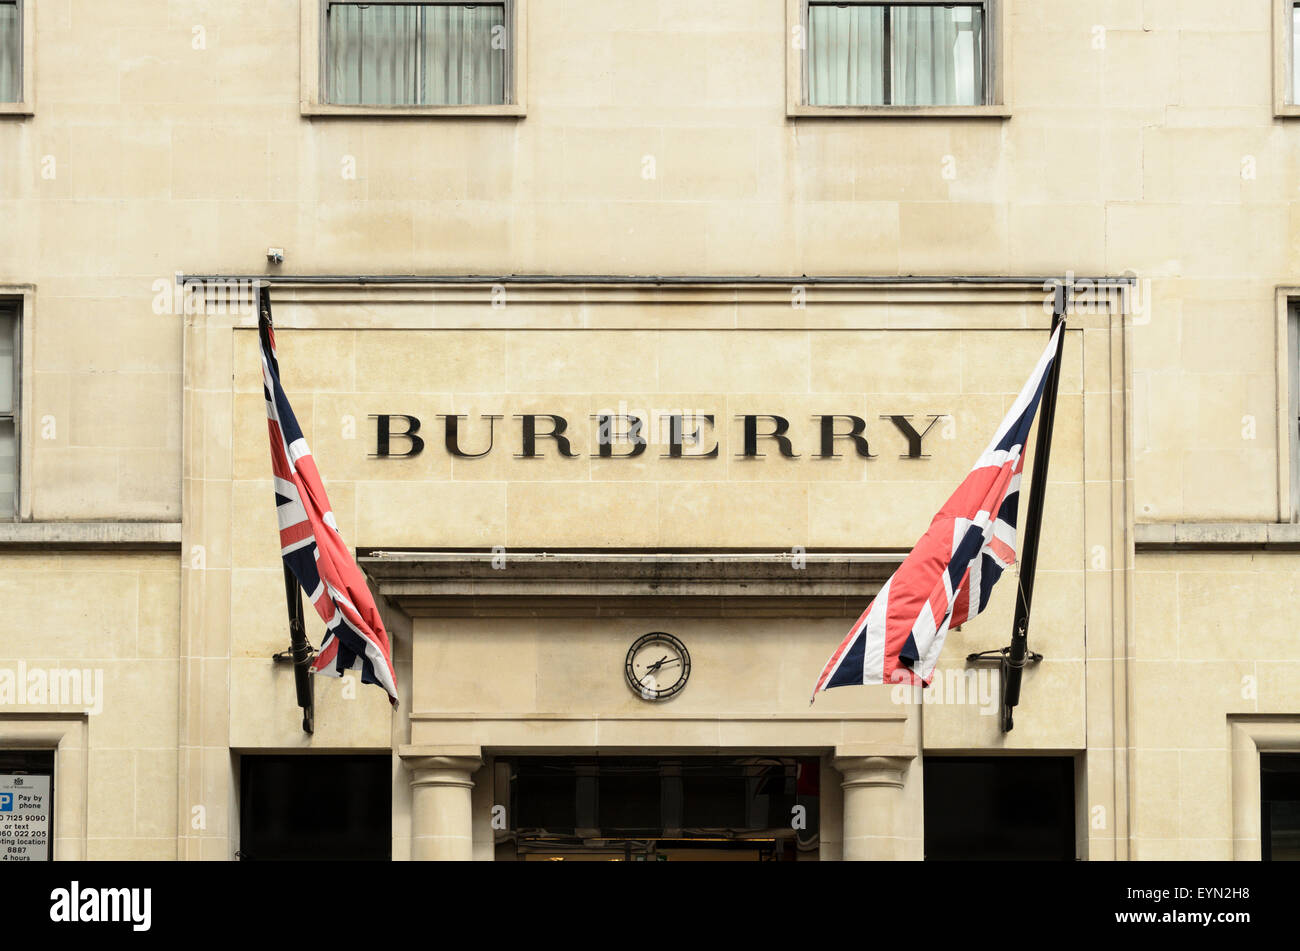 The Burberry Store, Bond Street, London, UK - Stock Image